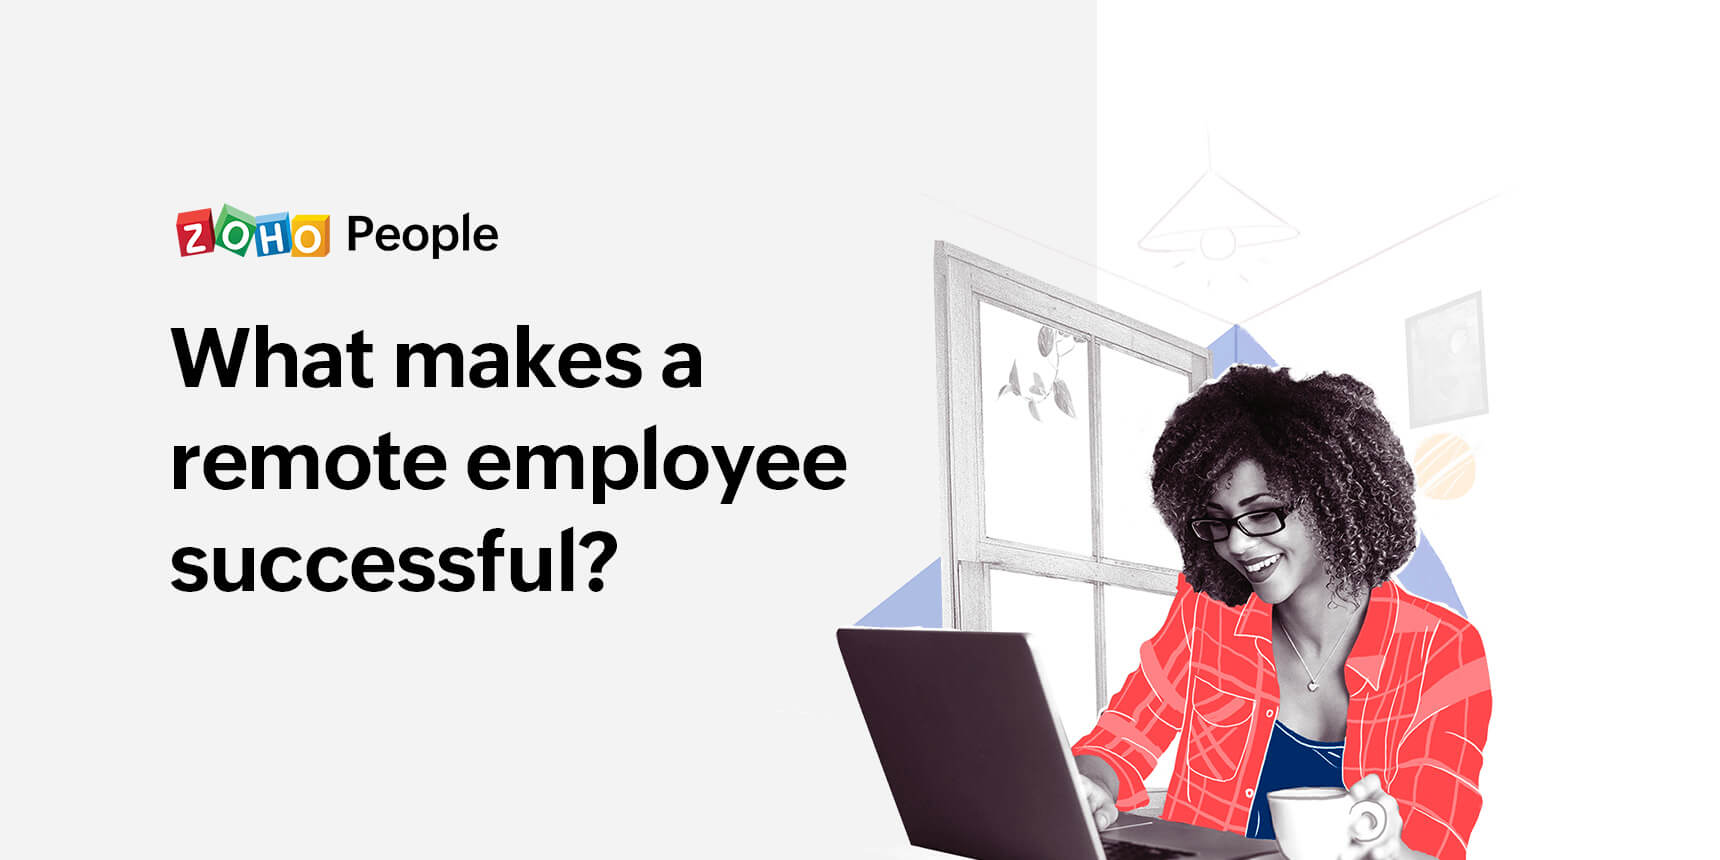 What makes a remote employee successful?